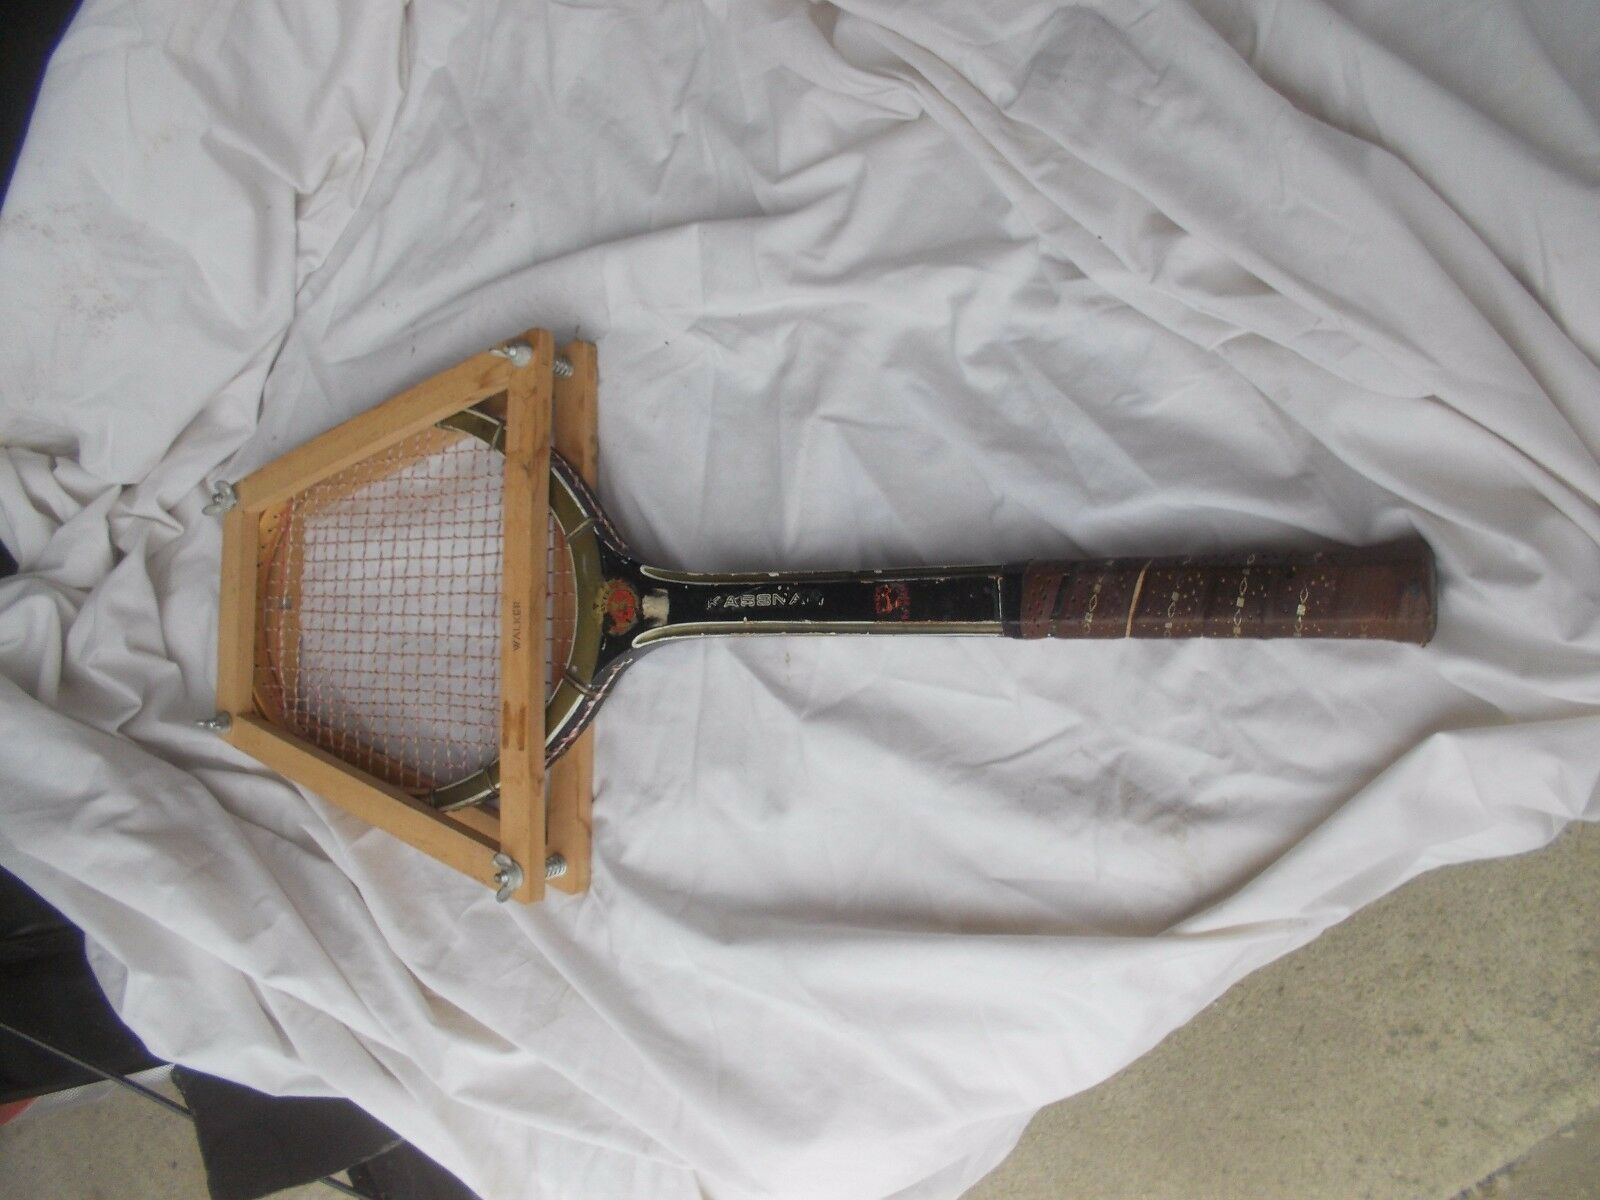 RARE VINTAGE 1970s Kassnayer Walker Player WOODEN WOOD TENNIS RACQUET + press